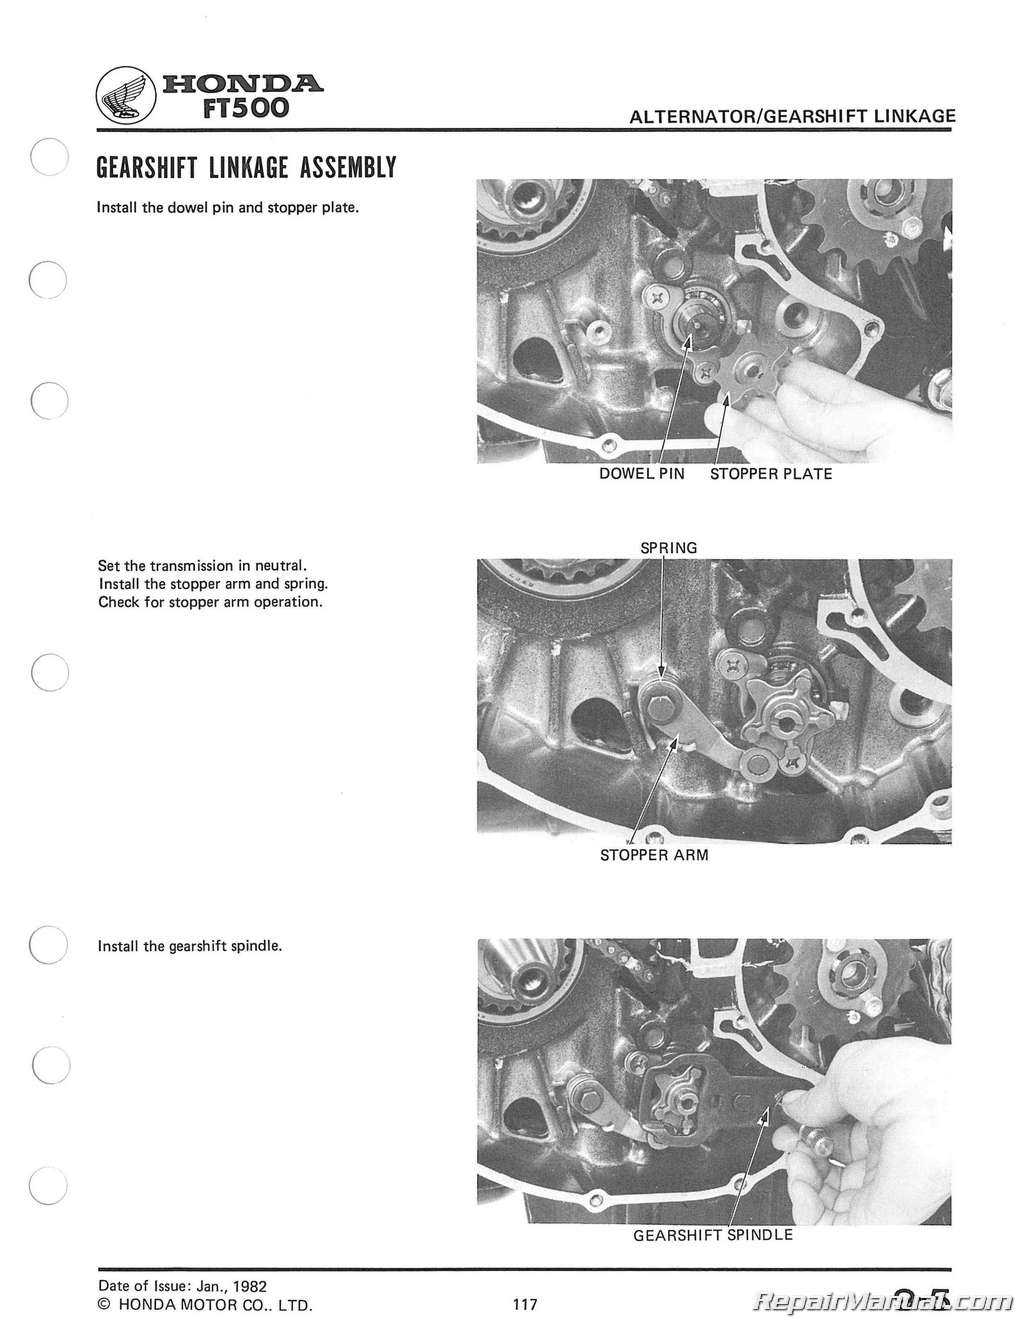 1982 1983 Honda Ft500 Ascot Motorcycle Service Manual Motor Diagram